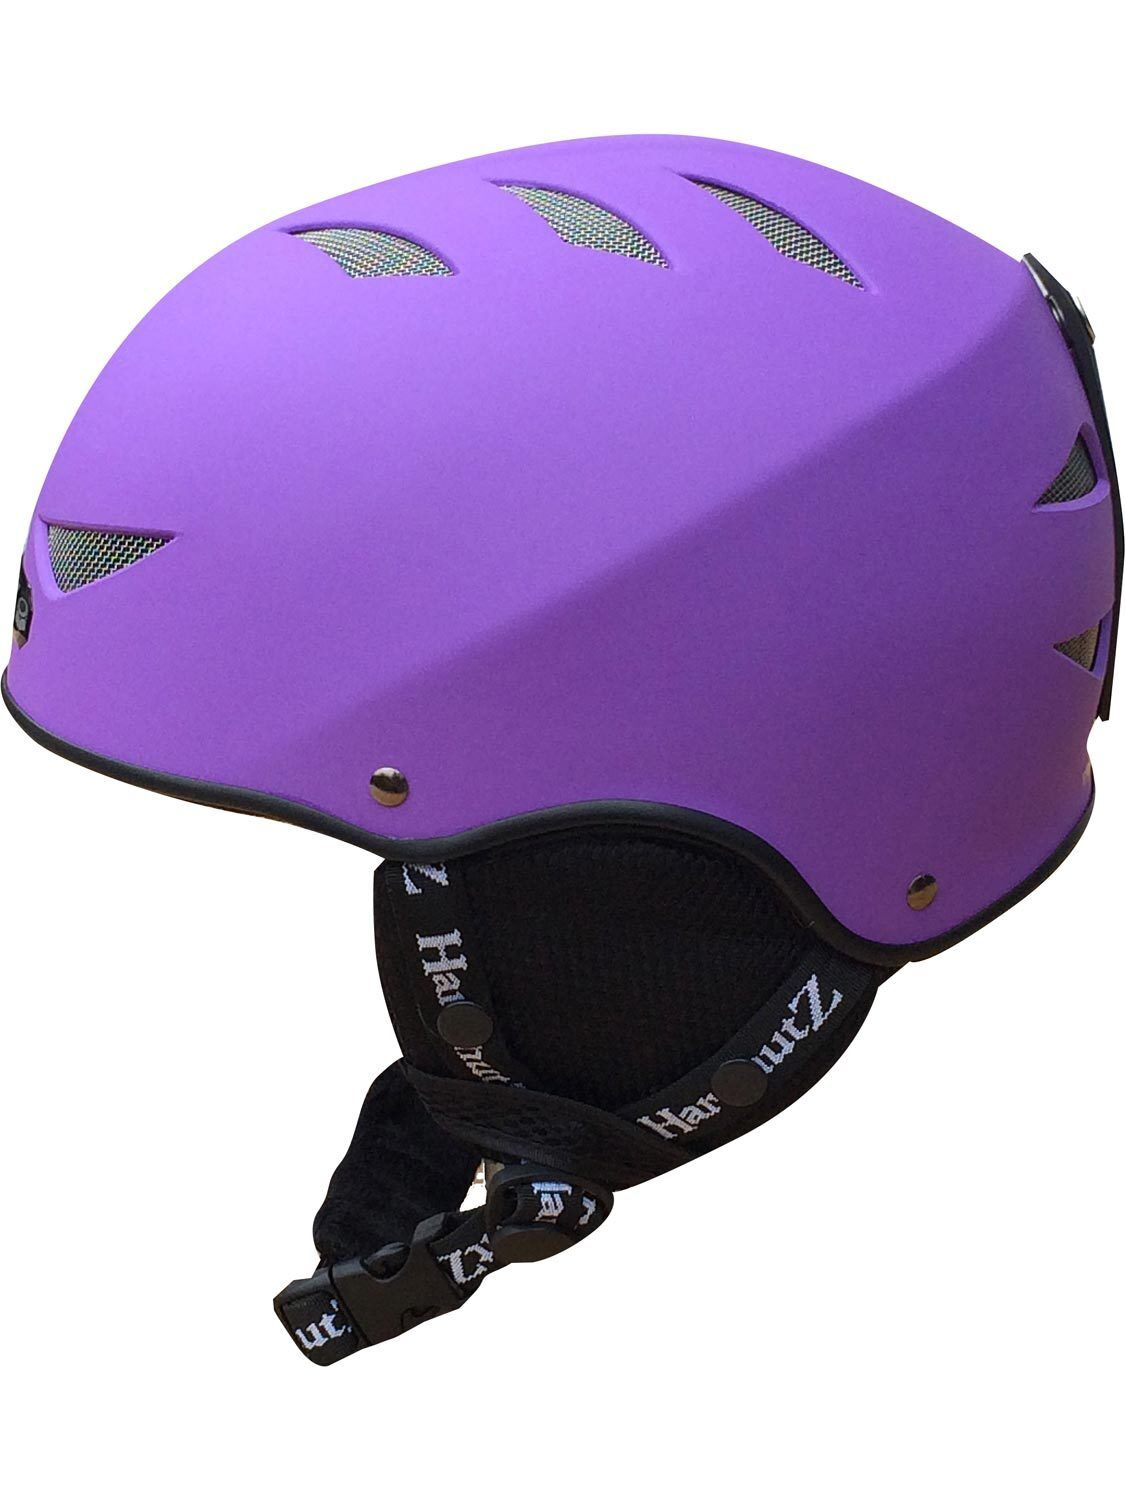 Hardnutz Ski Helmet Purple Adult & Kids Sizes Rubber Ski Helmet Snowboard New